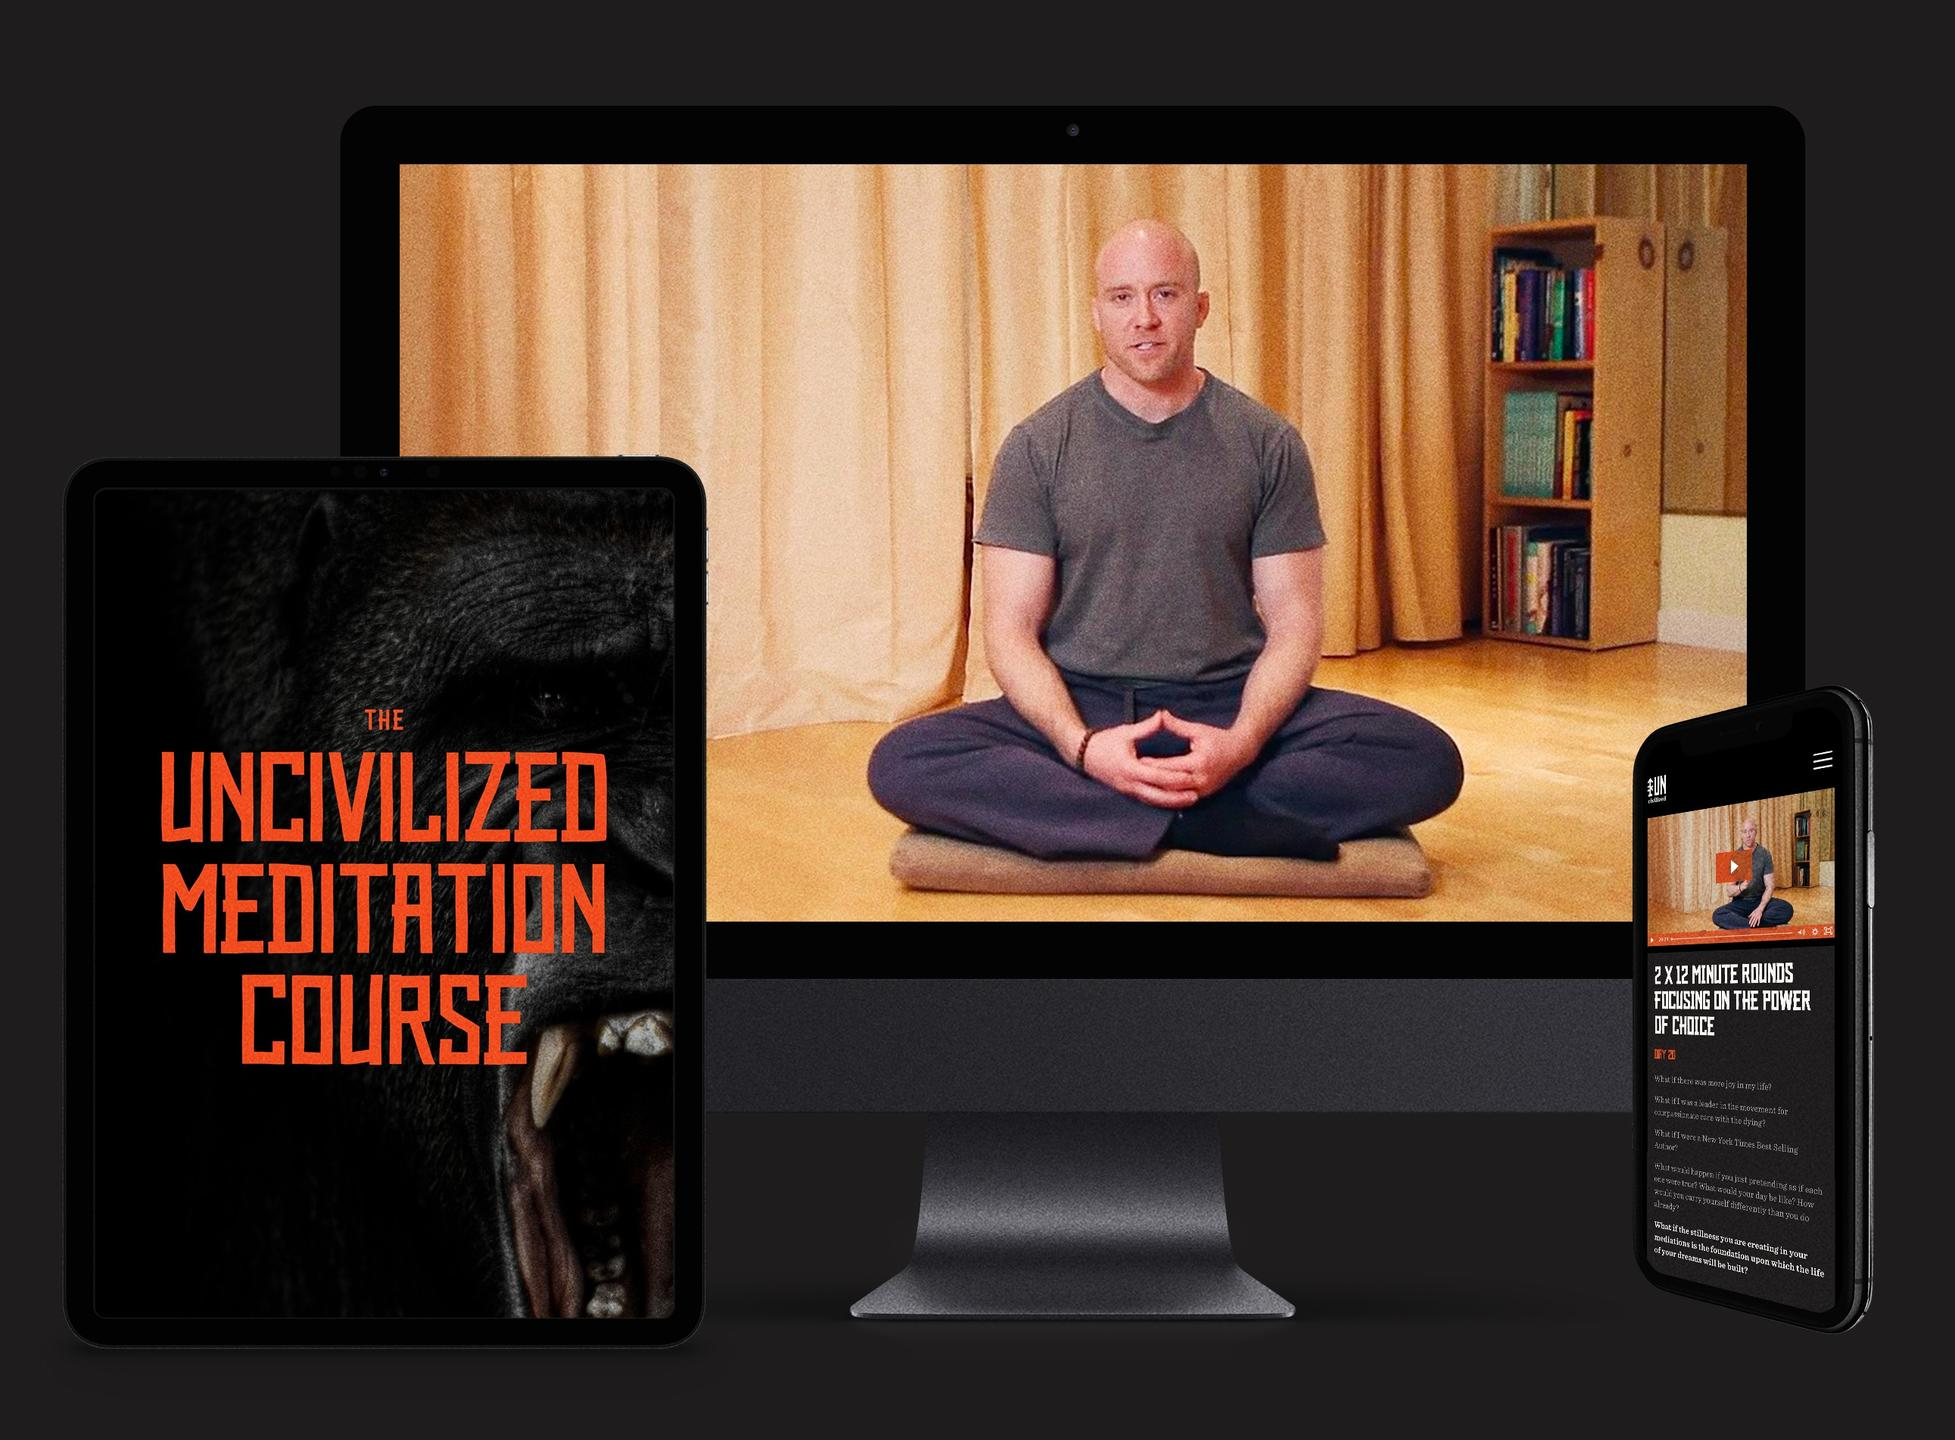 UNcivilized Meditation Course Materials